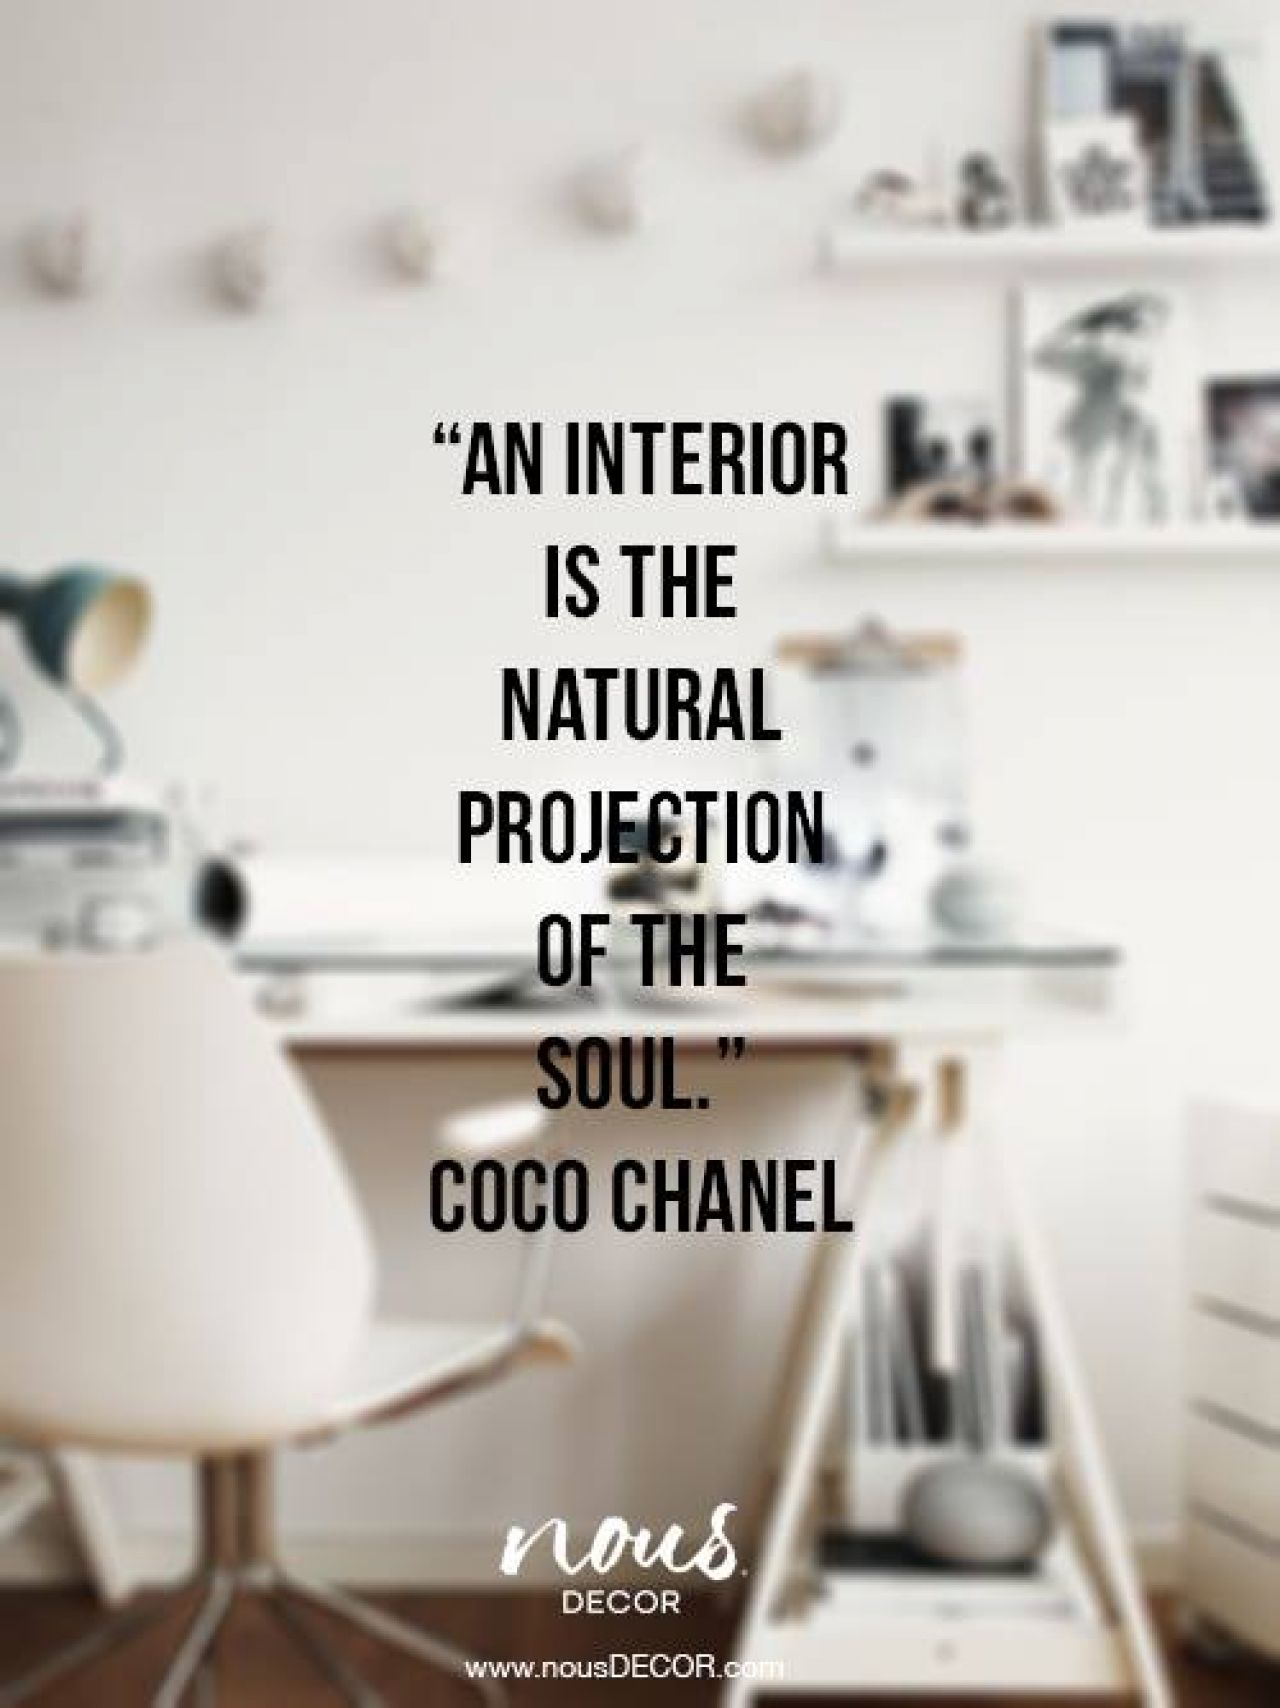 11 Rousing Quotes to Fuel Your Next Project  Interior design